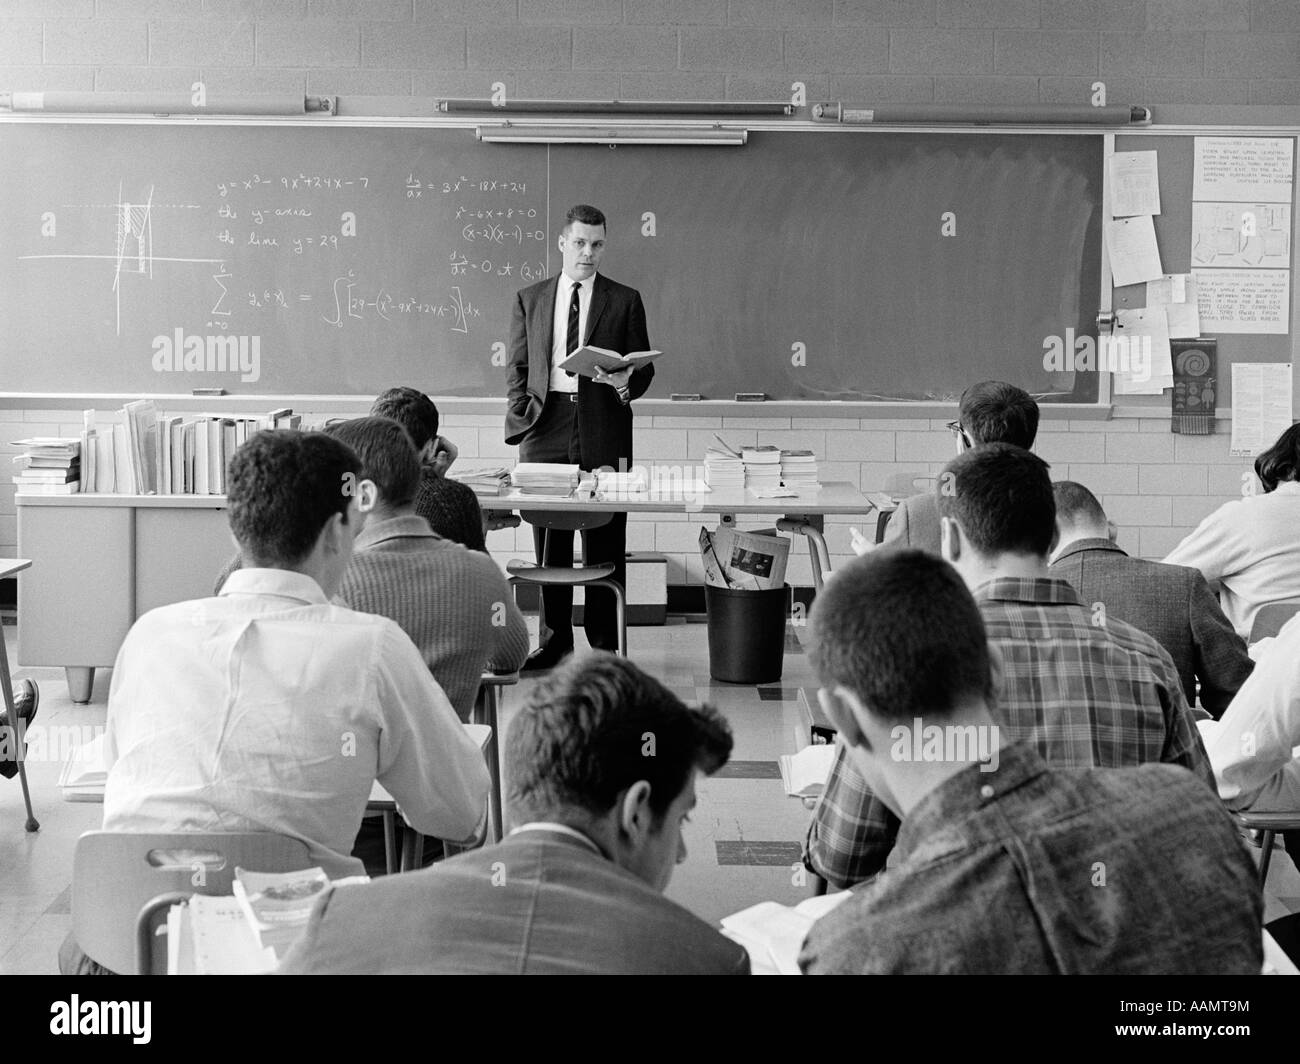 1960s Back View Of Classroom With Teacher Standing Behind Desk With